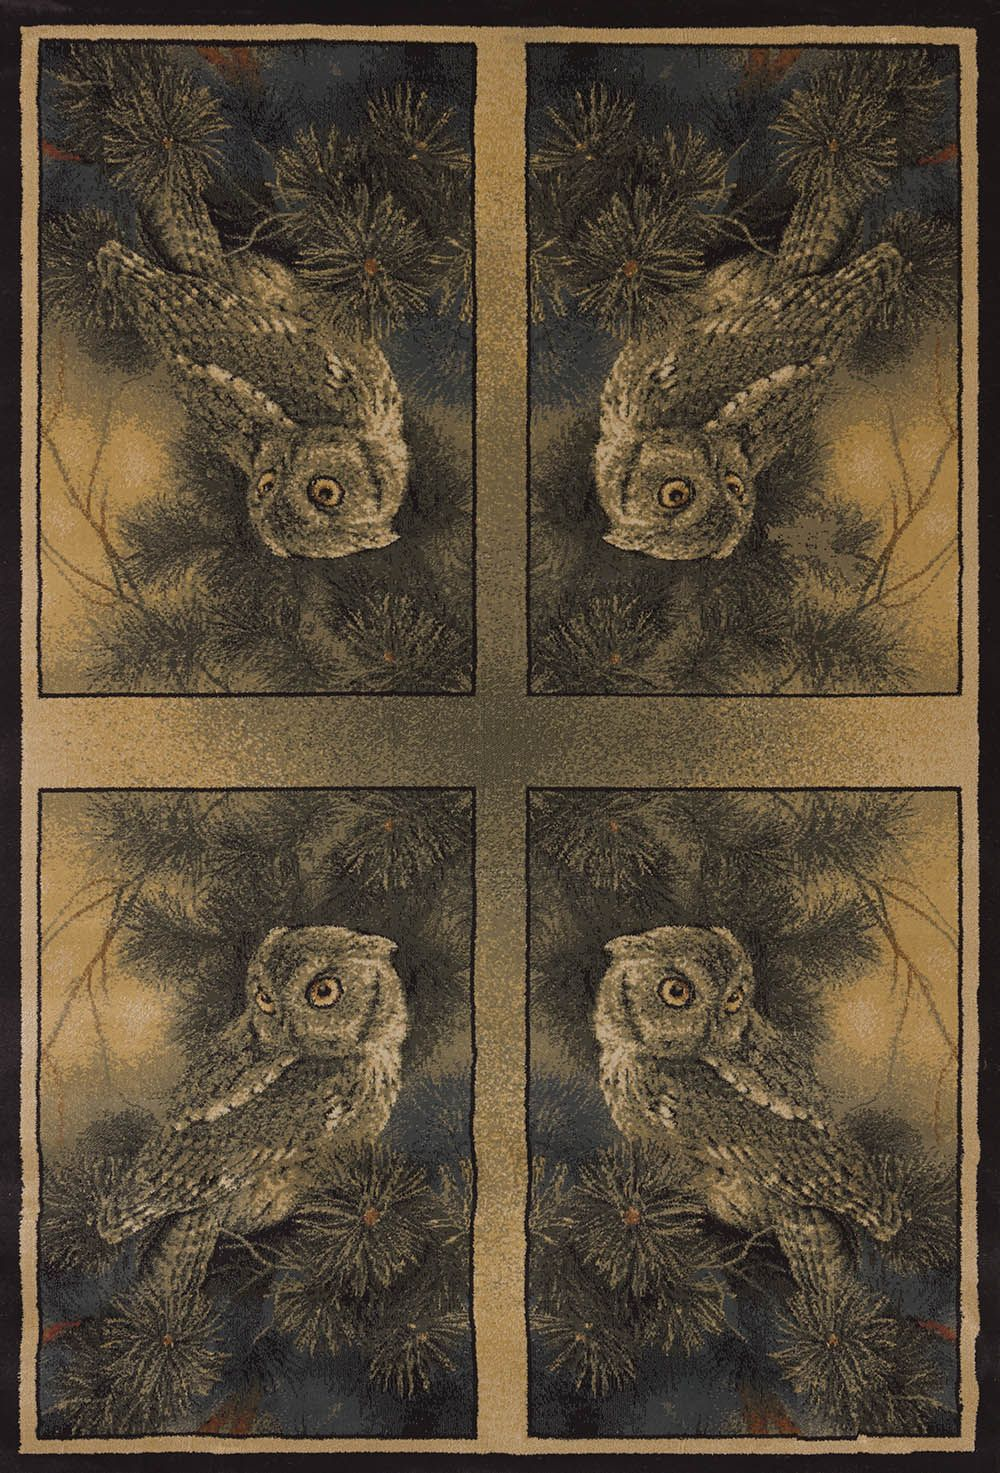 united weavers ww lic des genesis rm screech owl nature southwestern/lodge area rug collection